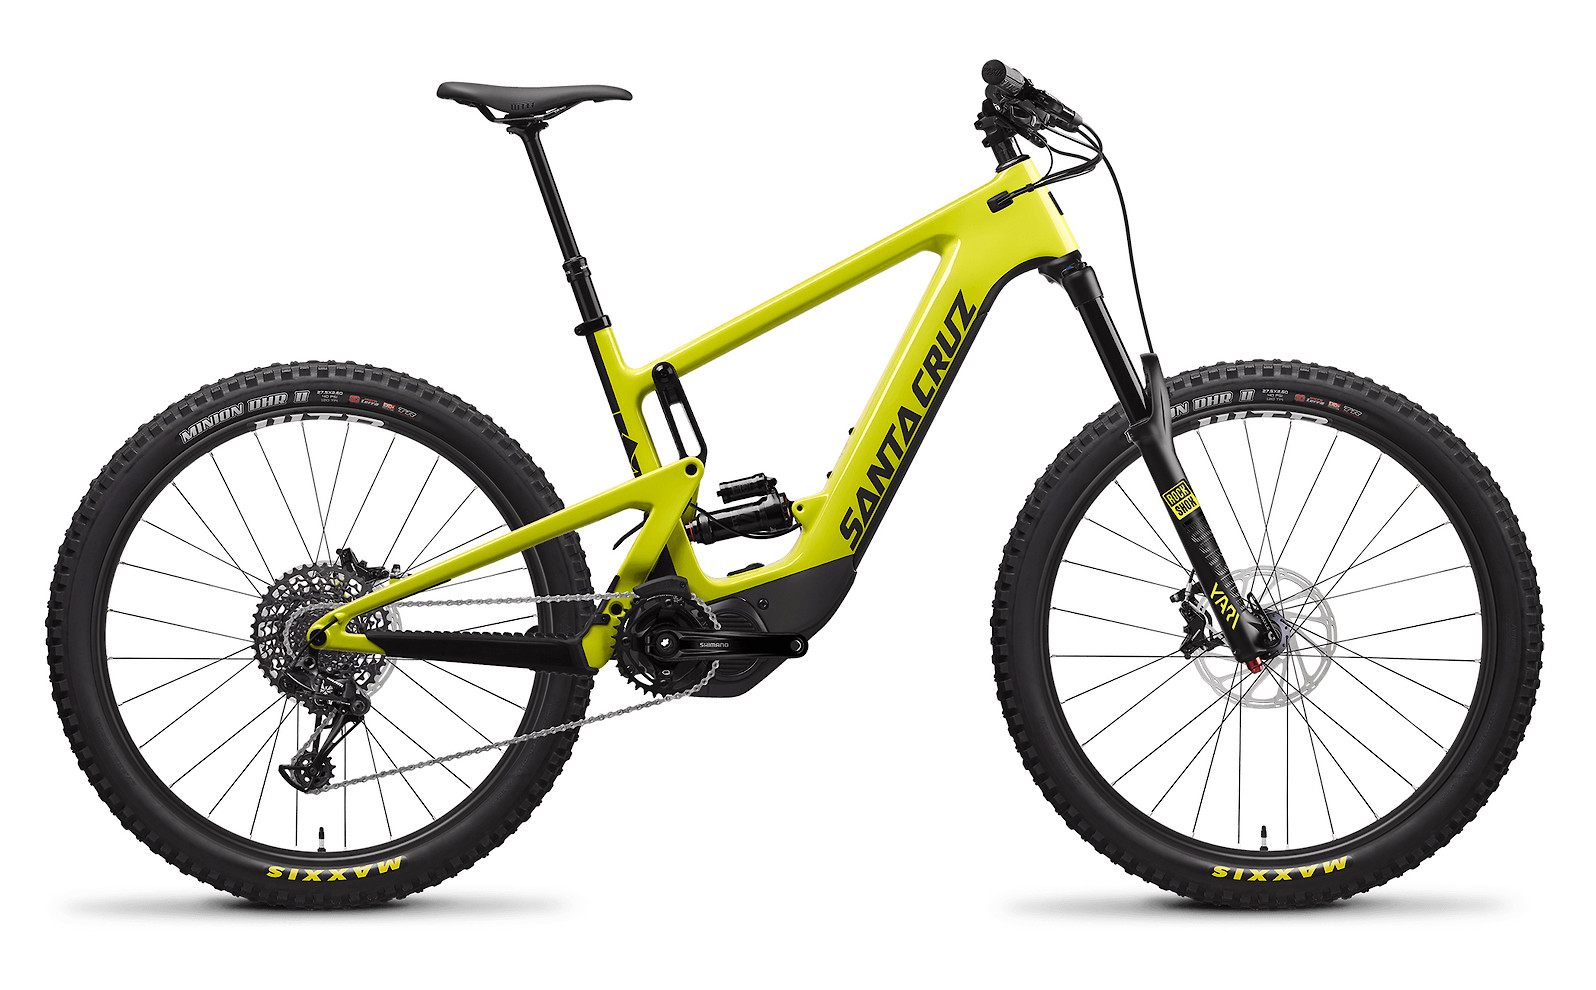 2020 Santa Cruz Heckler Carbon CC R (Yellowjacket and Black)